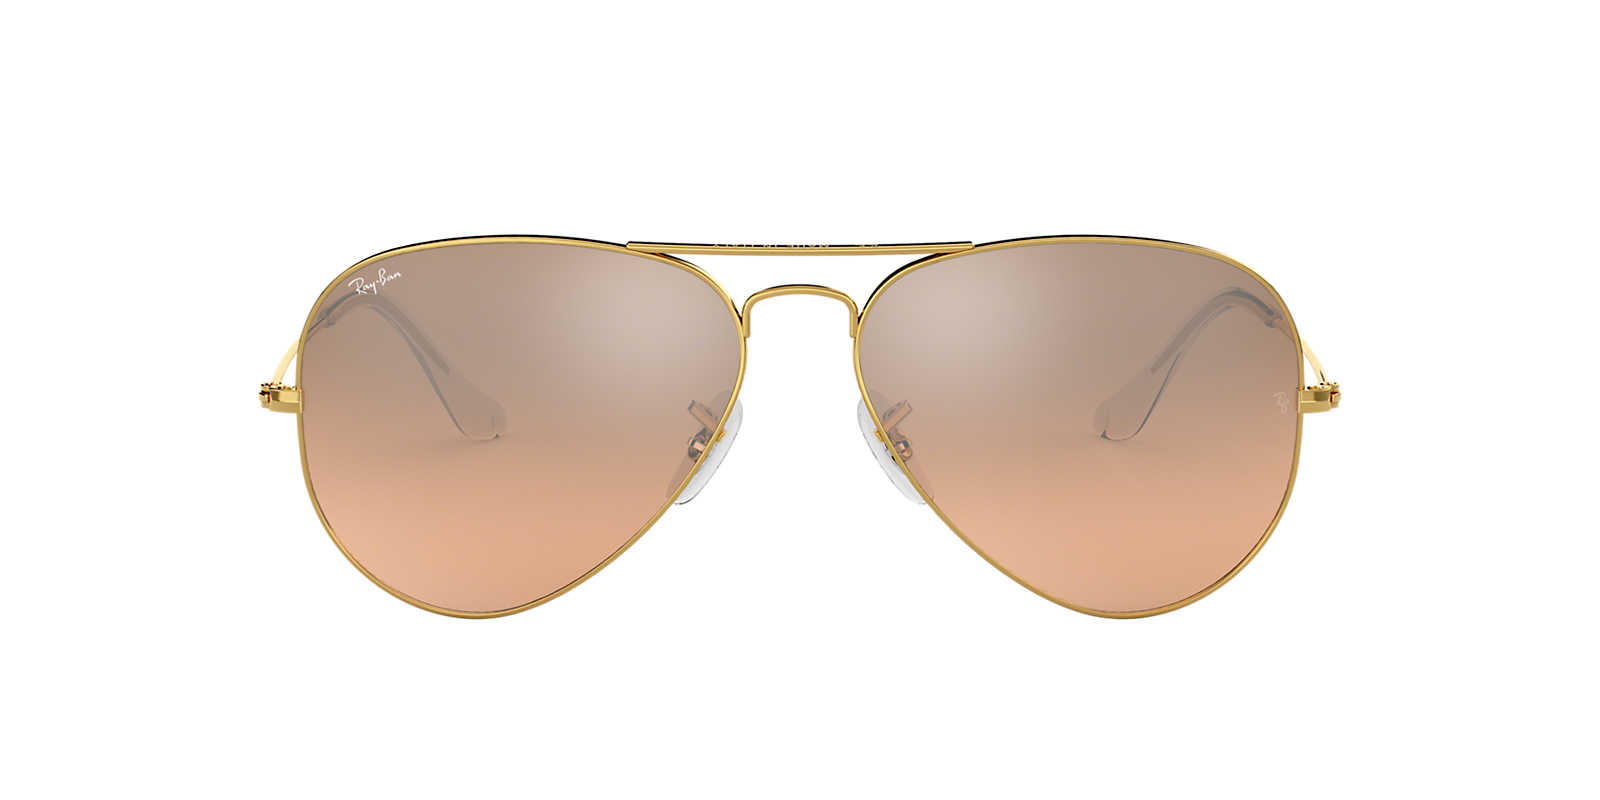 rose gold ray ban aviators  Ray-Ban RB3025 58 ORIGINAL AVIATOR 58 Pink \u0026 Gold Shiny Sunglasses ...